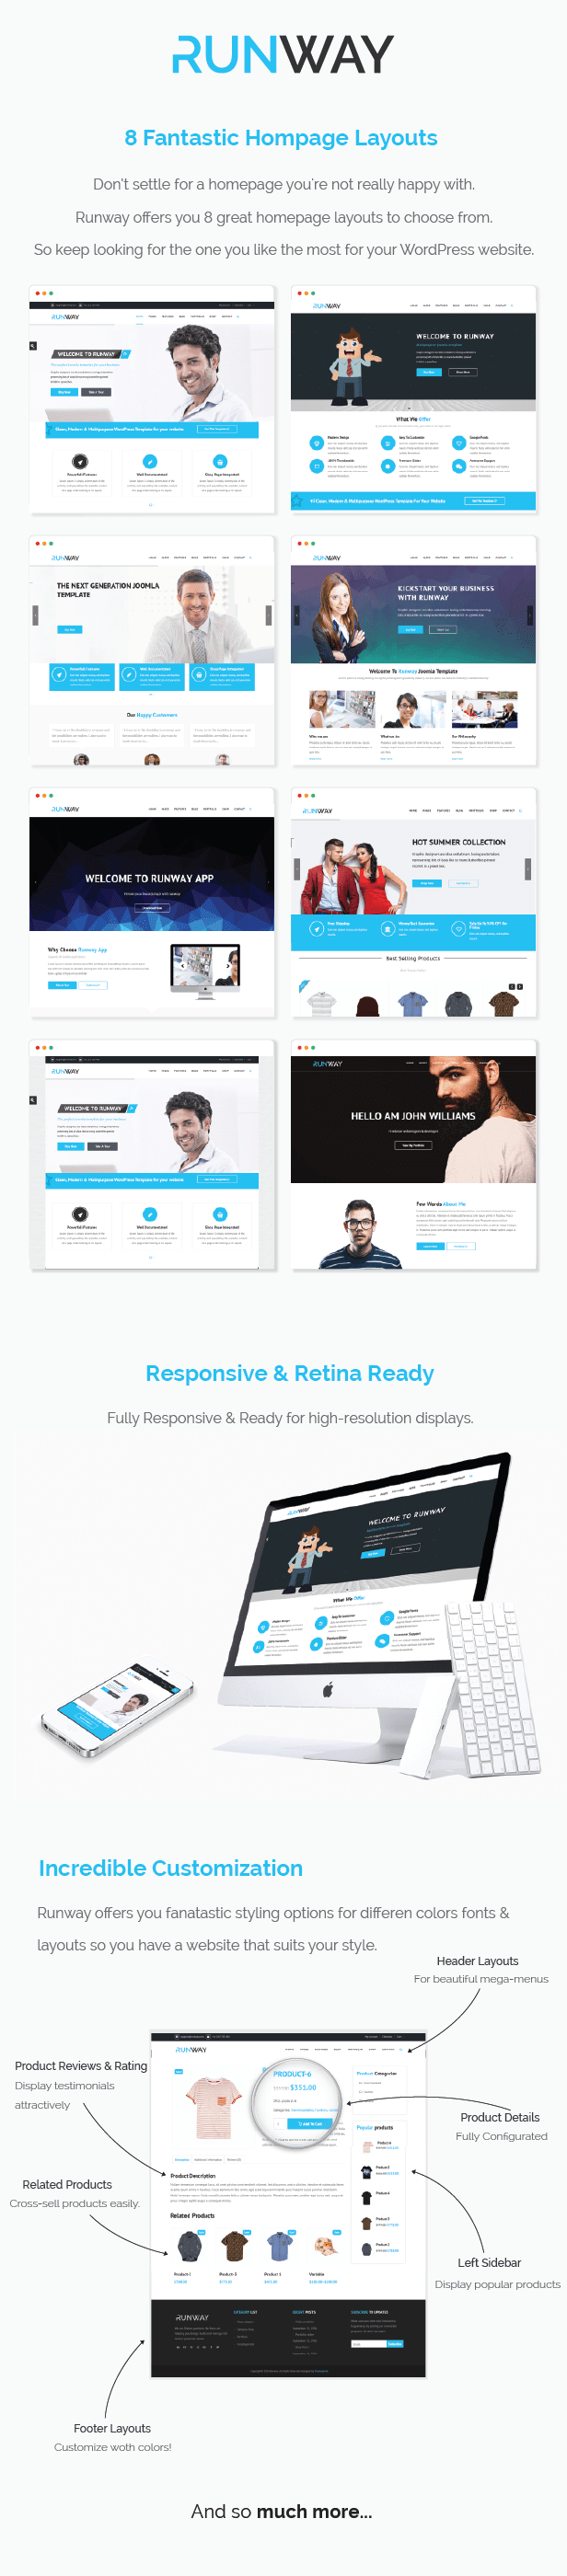 Runway WordPress Theme features